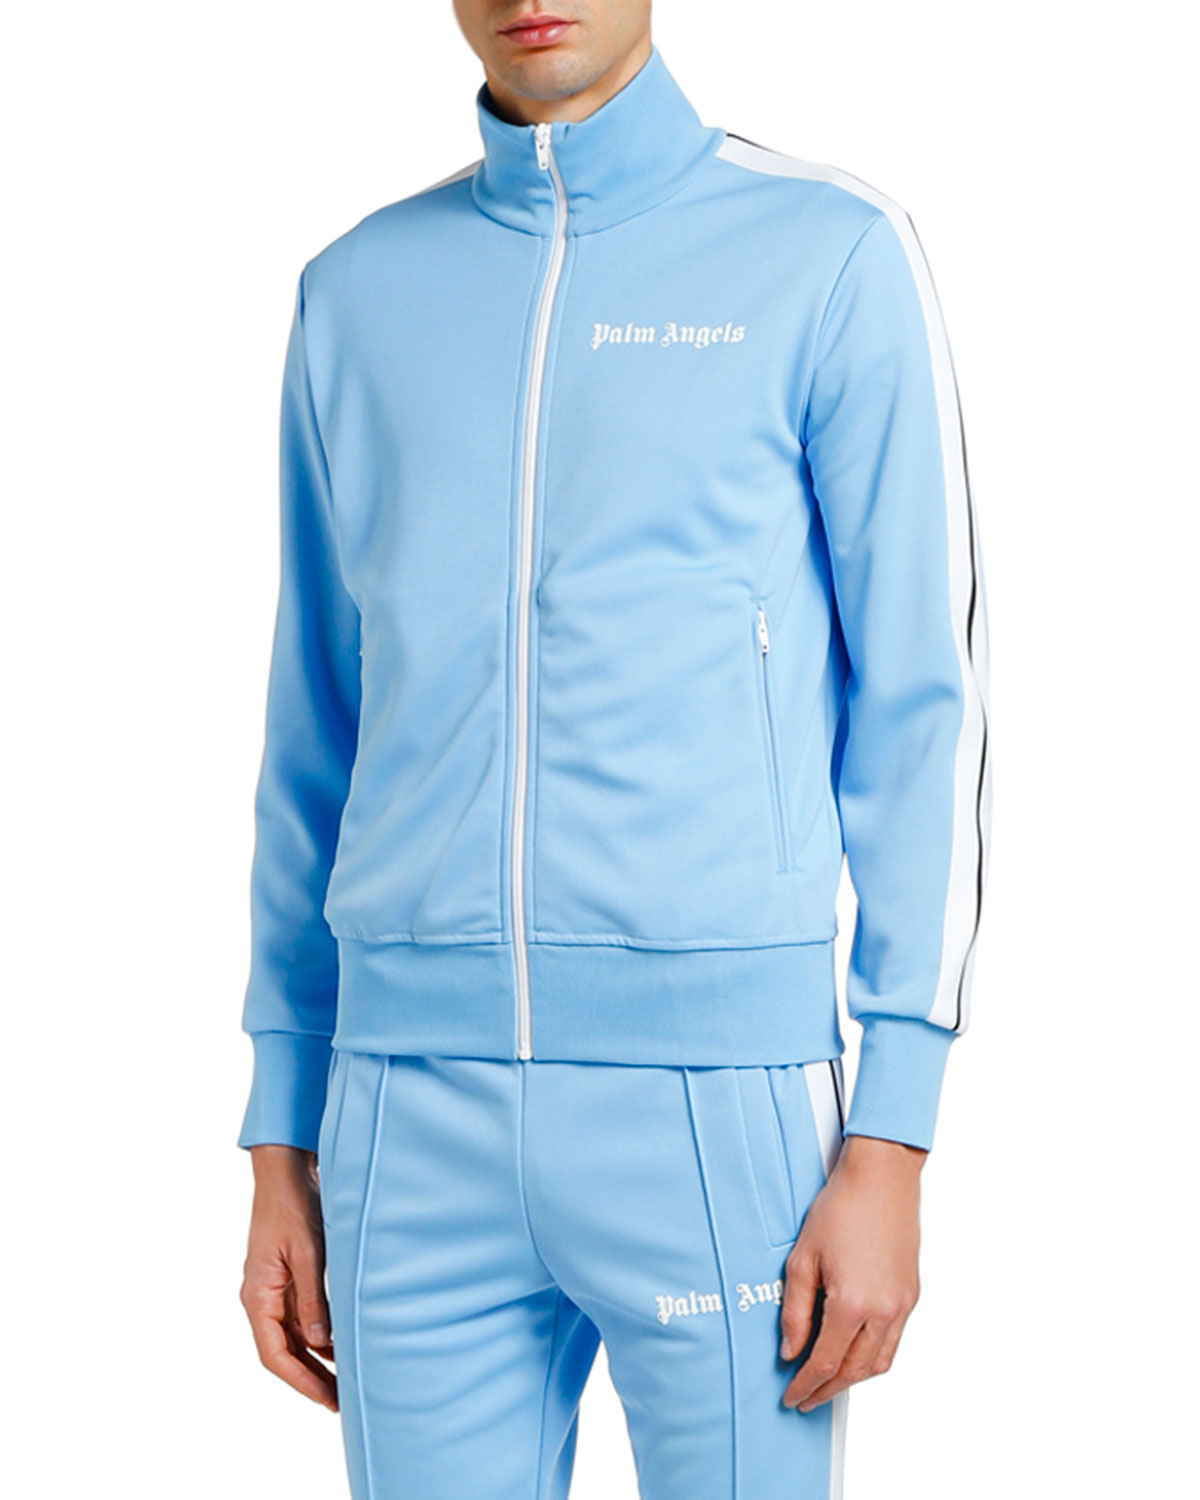 Palm Angels Jackets MEN'S CLASSIC TRACK JACKET